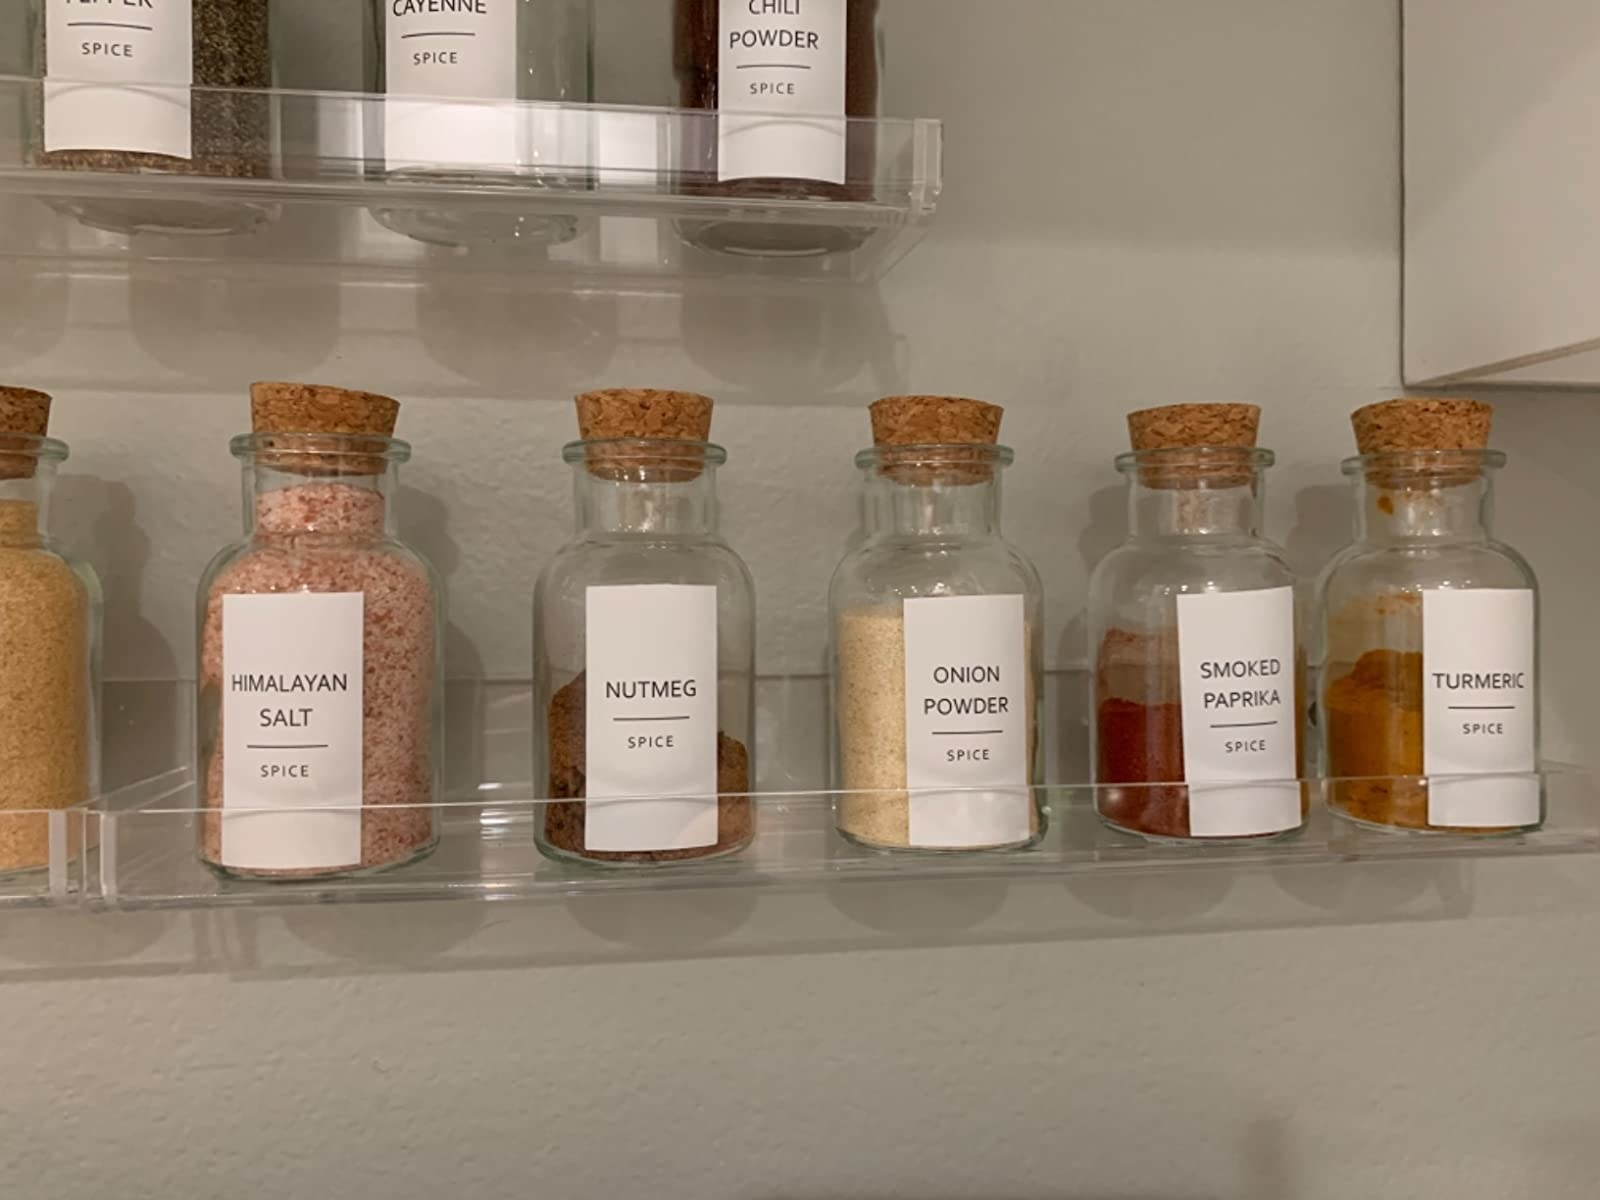 reviewer photo showing the labels on their spice jars